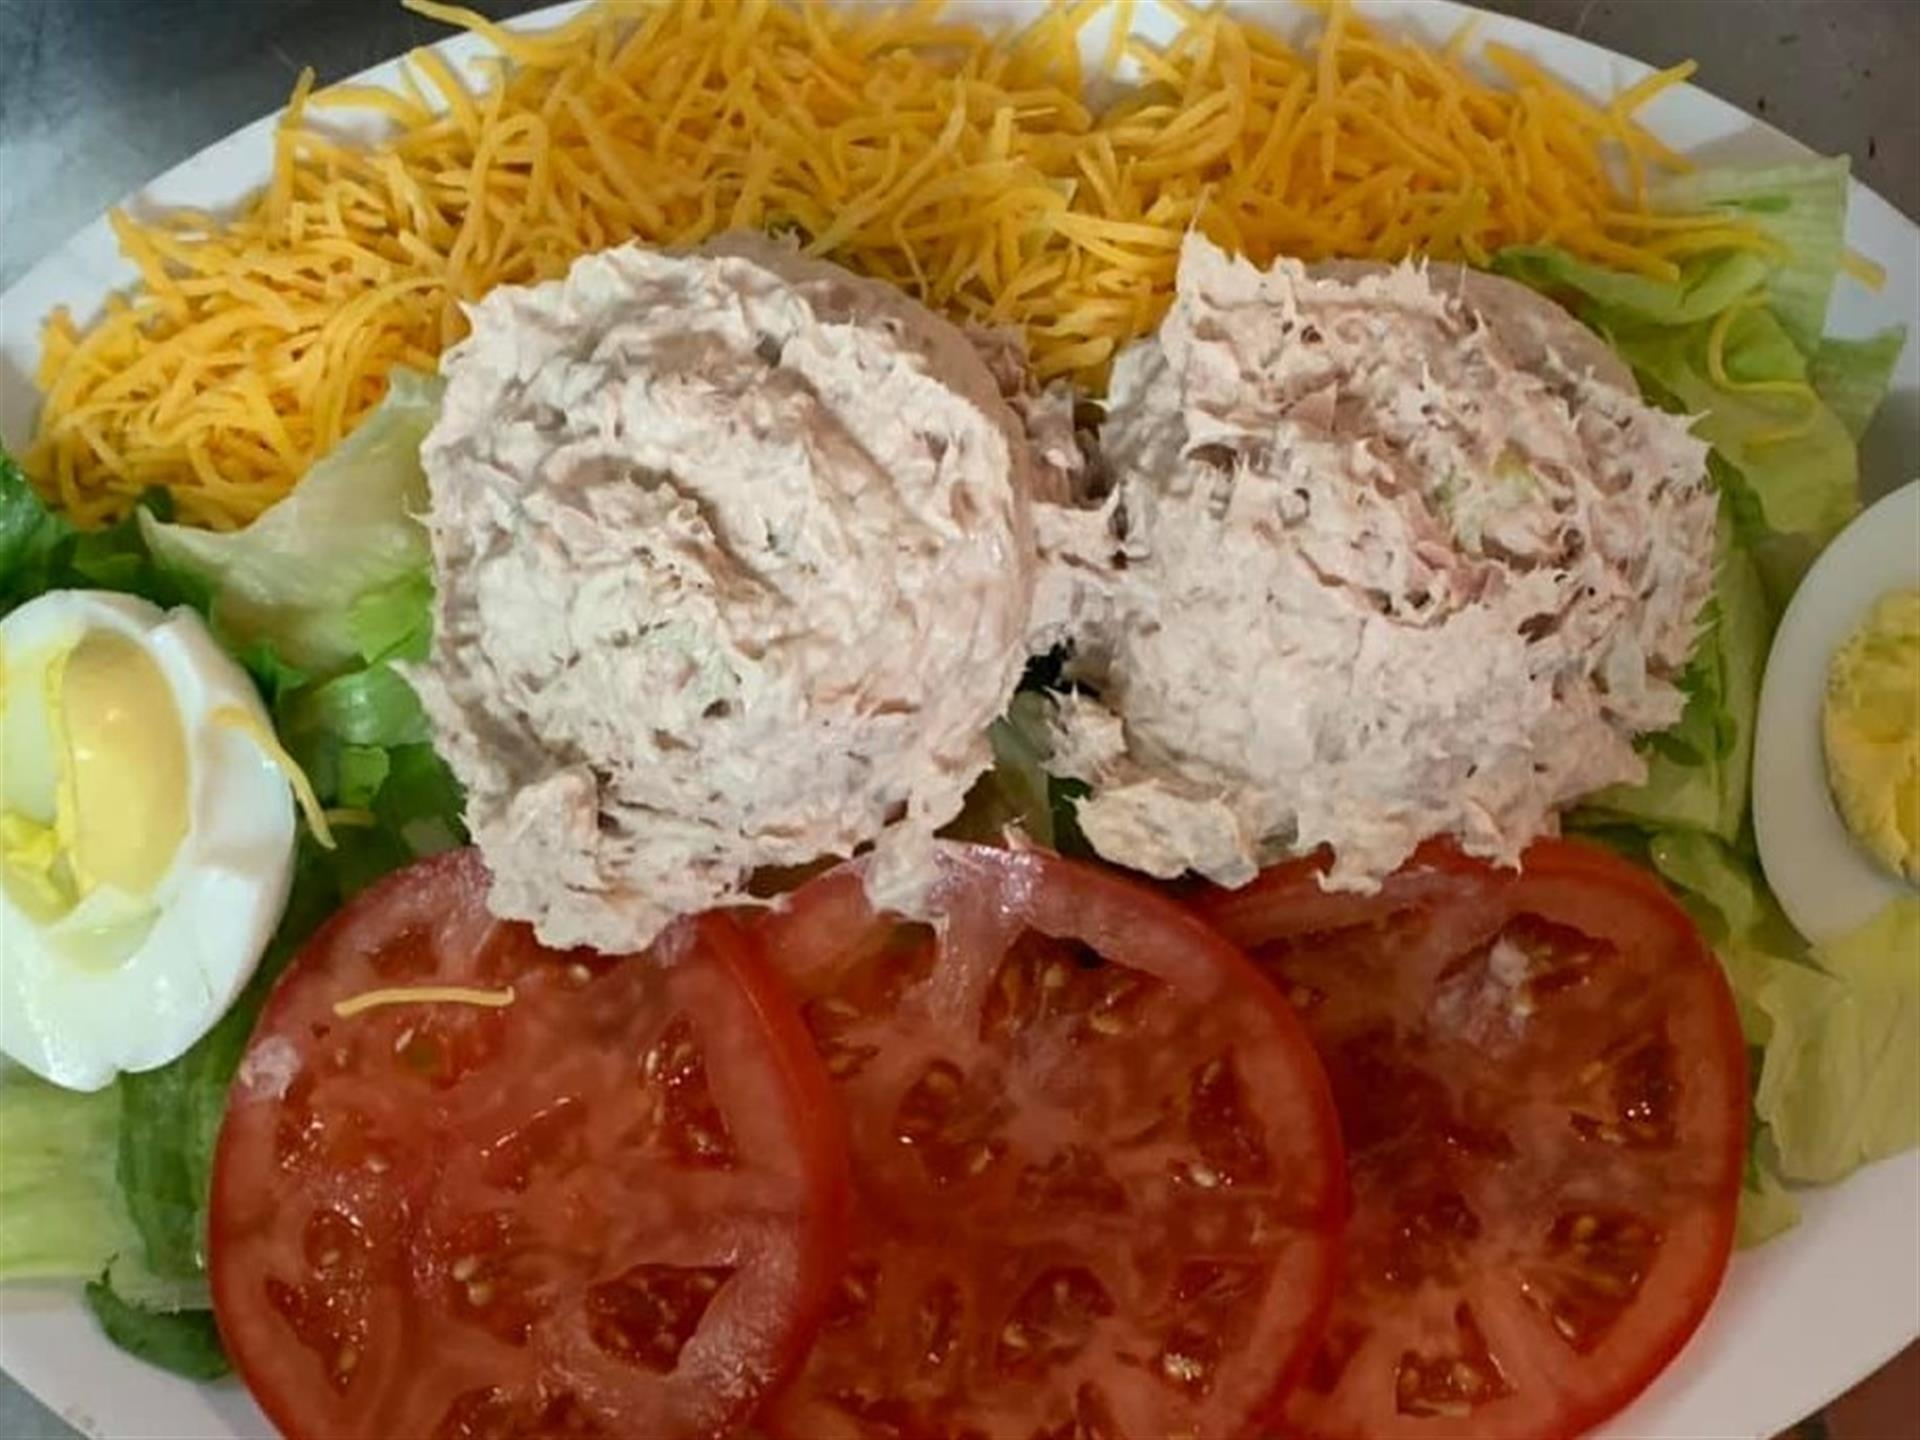 Cold Plate. Chicken and tuna salad scoop, tomato and boiled egg served on a bed of lettuce